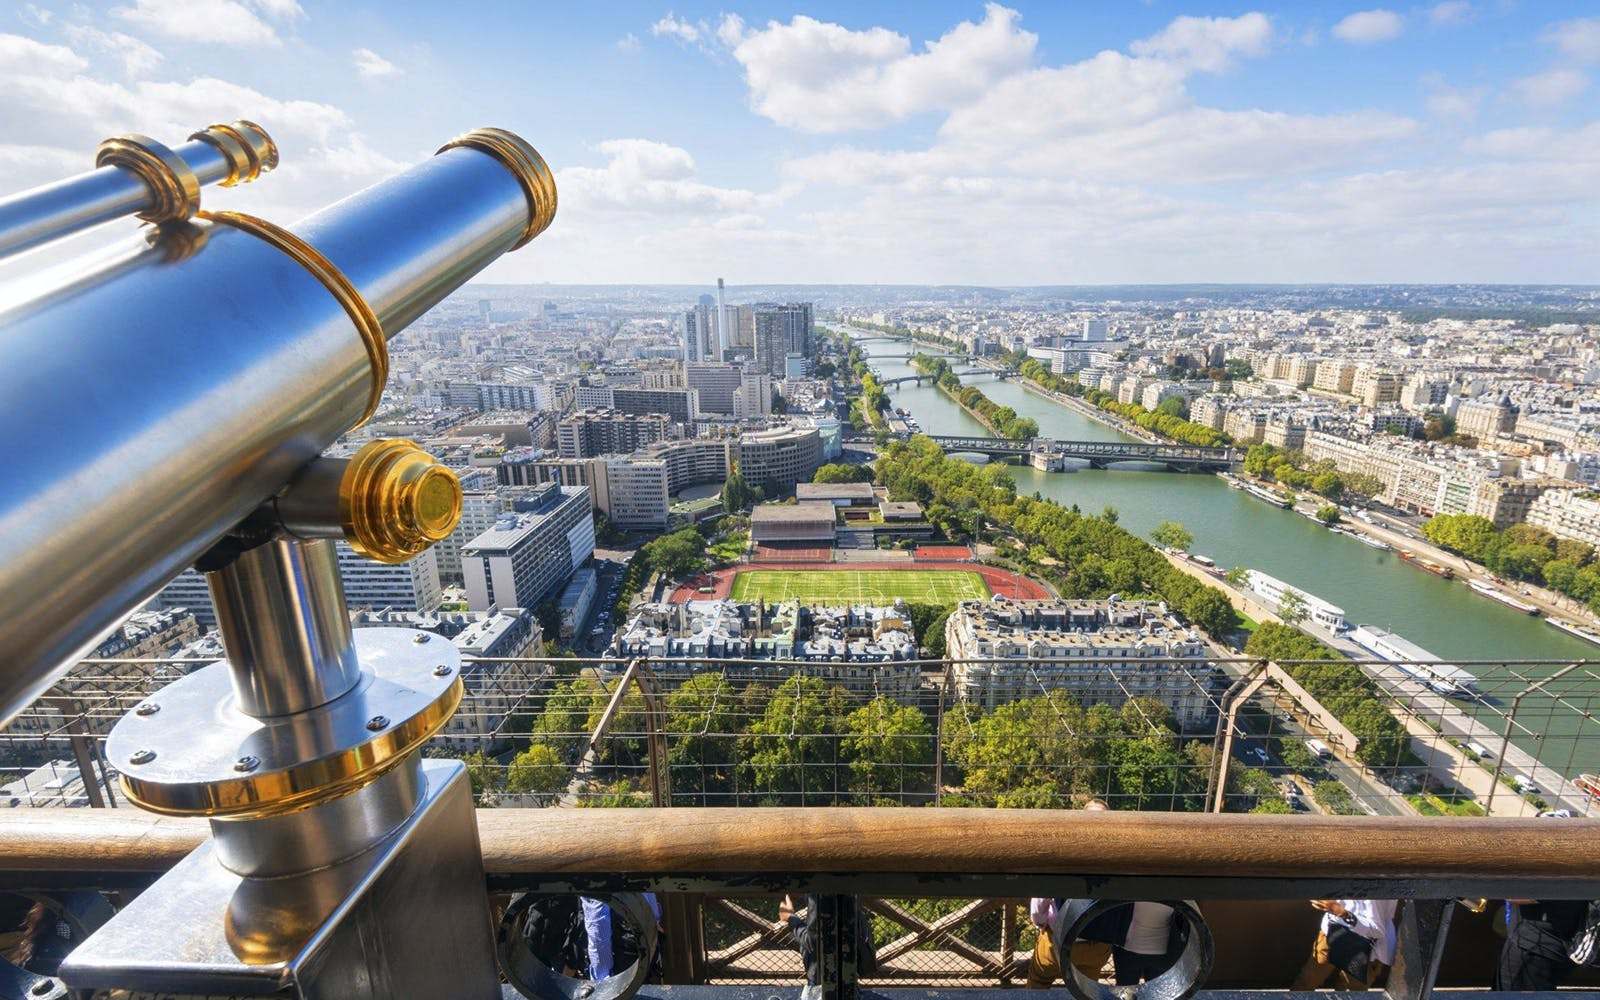 Skip the Line Eiffel Summit & Seine Cruise + Hop-On Hop-Off Tickets Combo